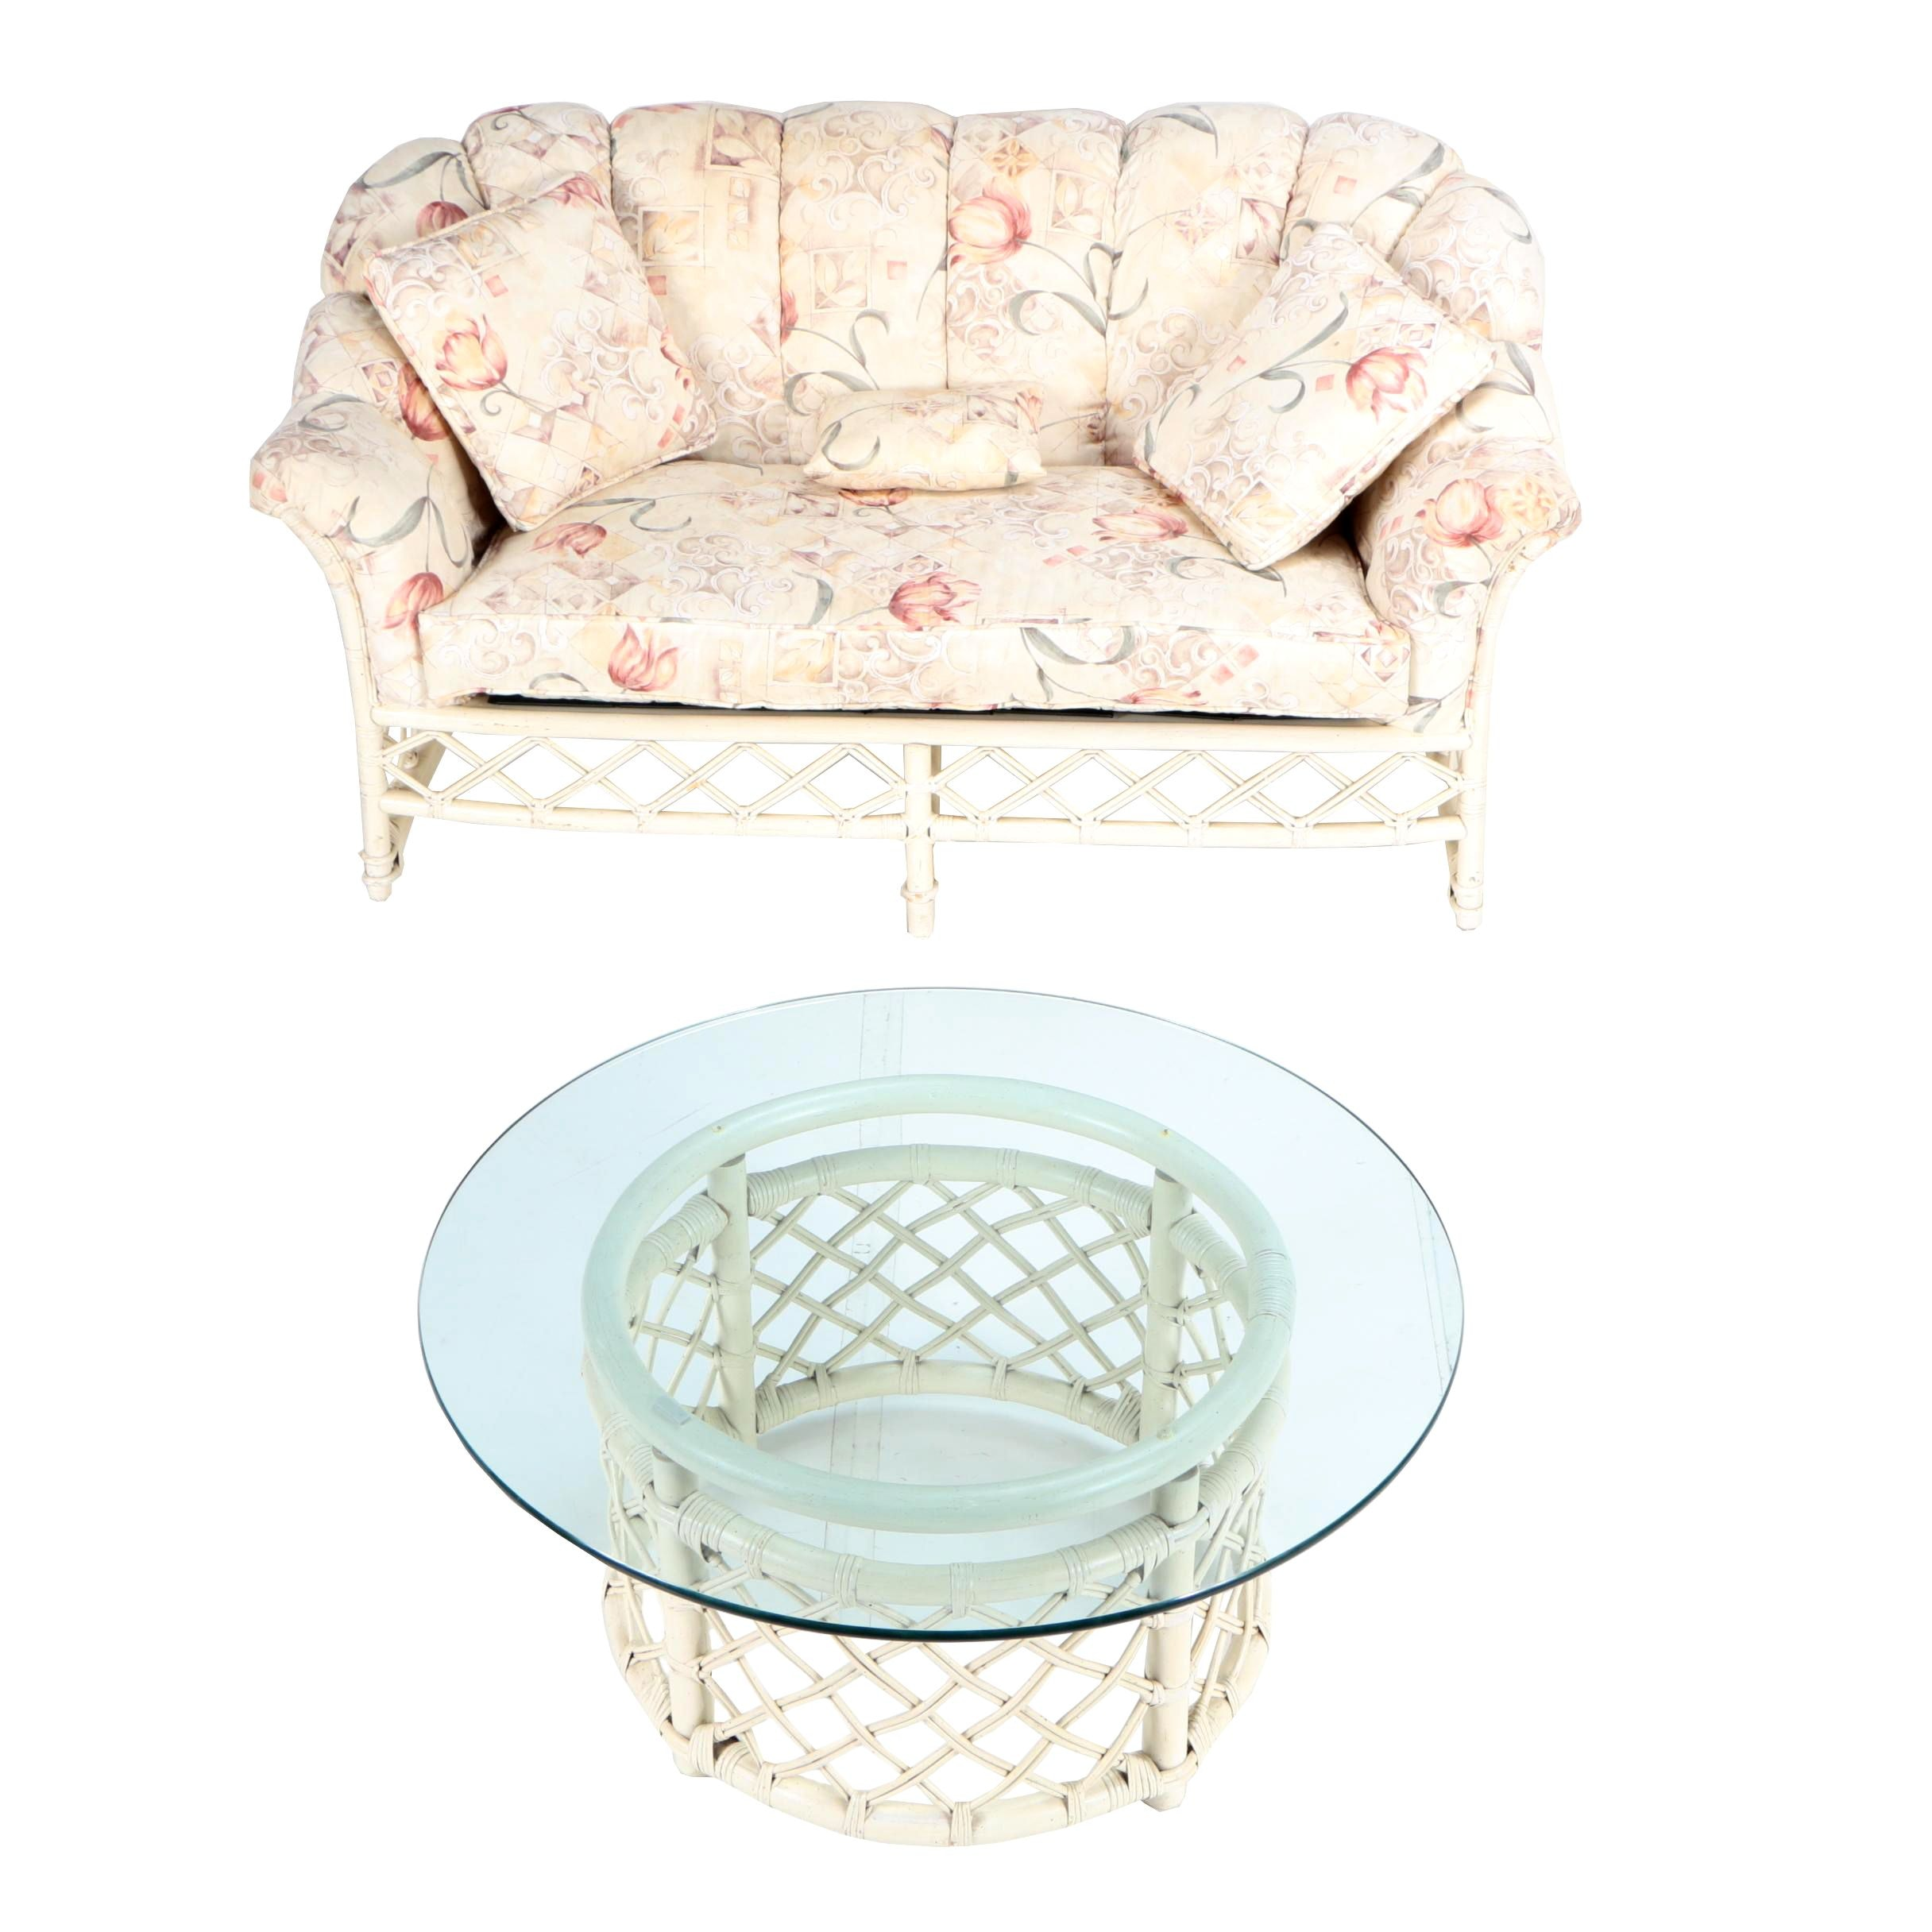 Vintage Painted Rattan Loveseat with Glass Top Coffee Table